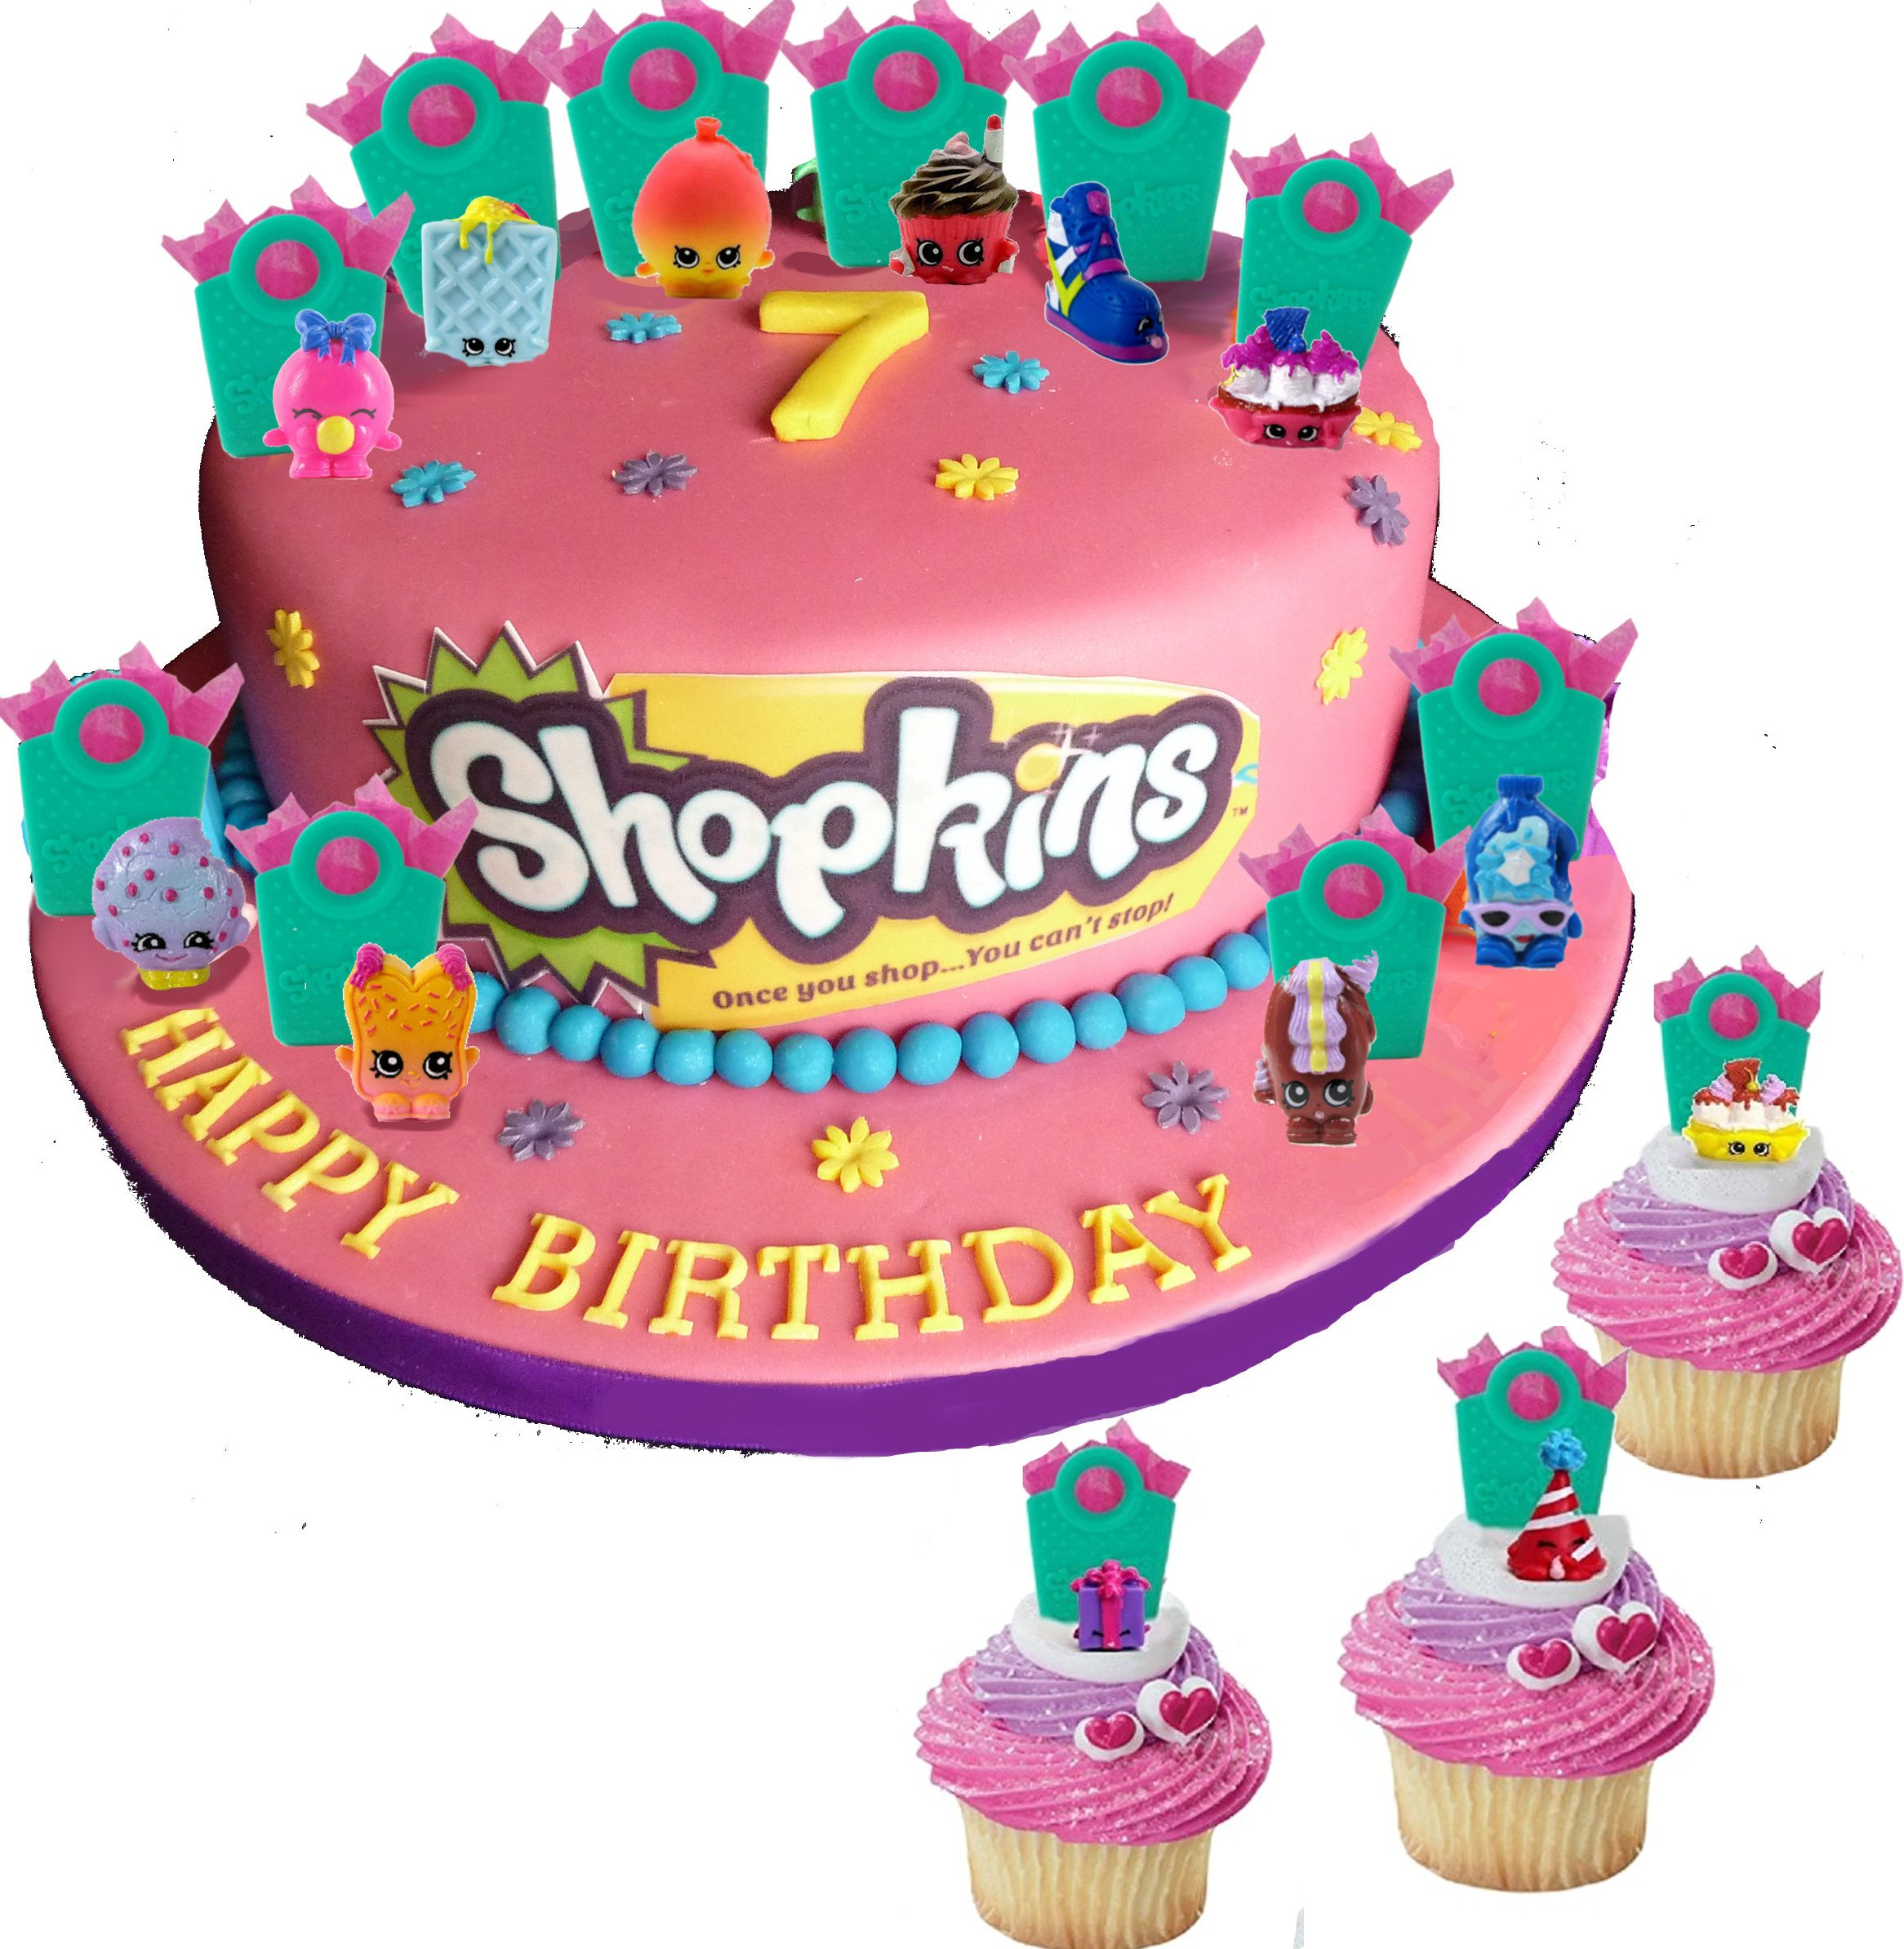 Shopkins Party Cupcake Cake Toppers With Surprise Shopkins Figure Hidden Inside Shopping Bags And Shopkins Tattoos Set Of 12